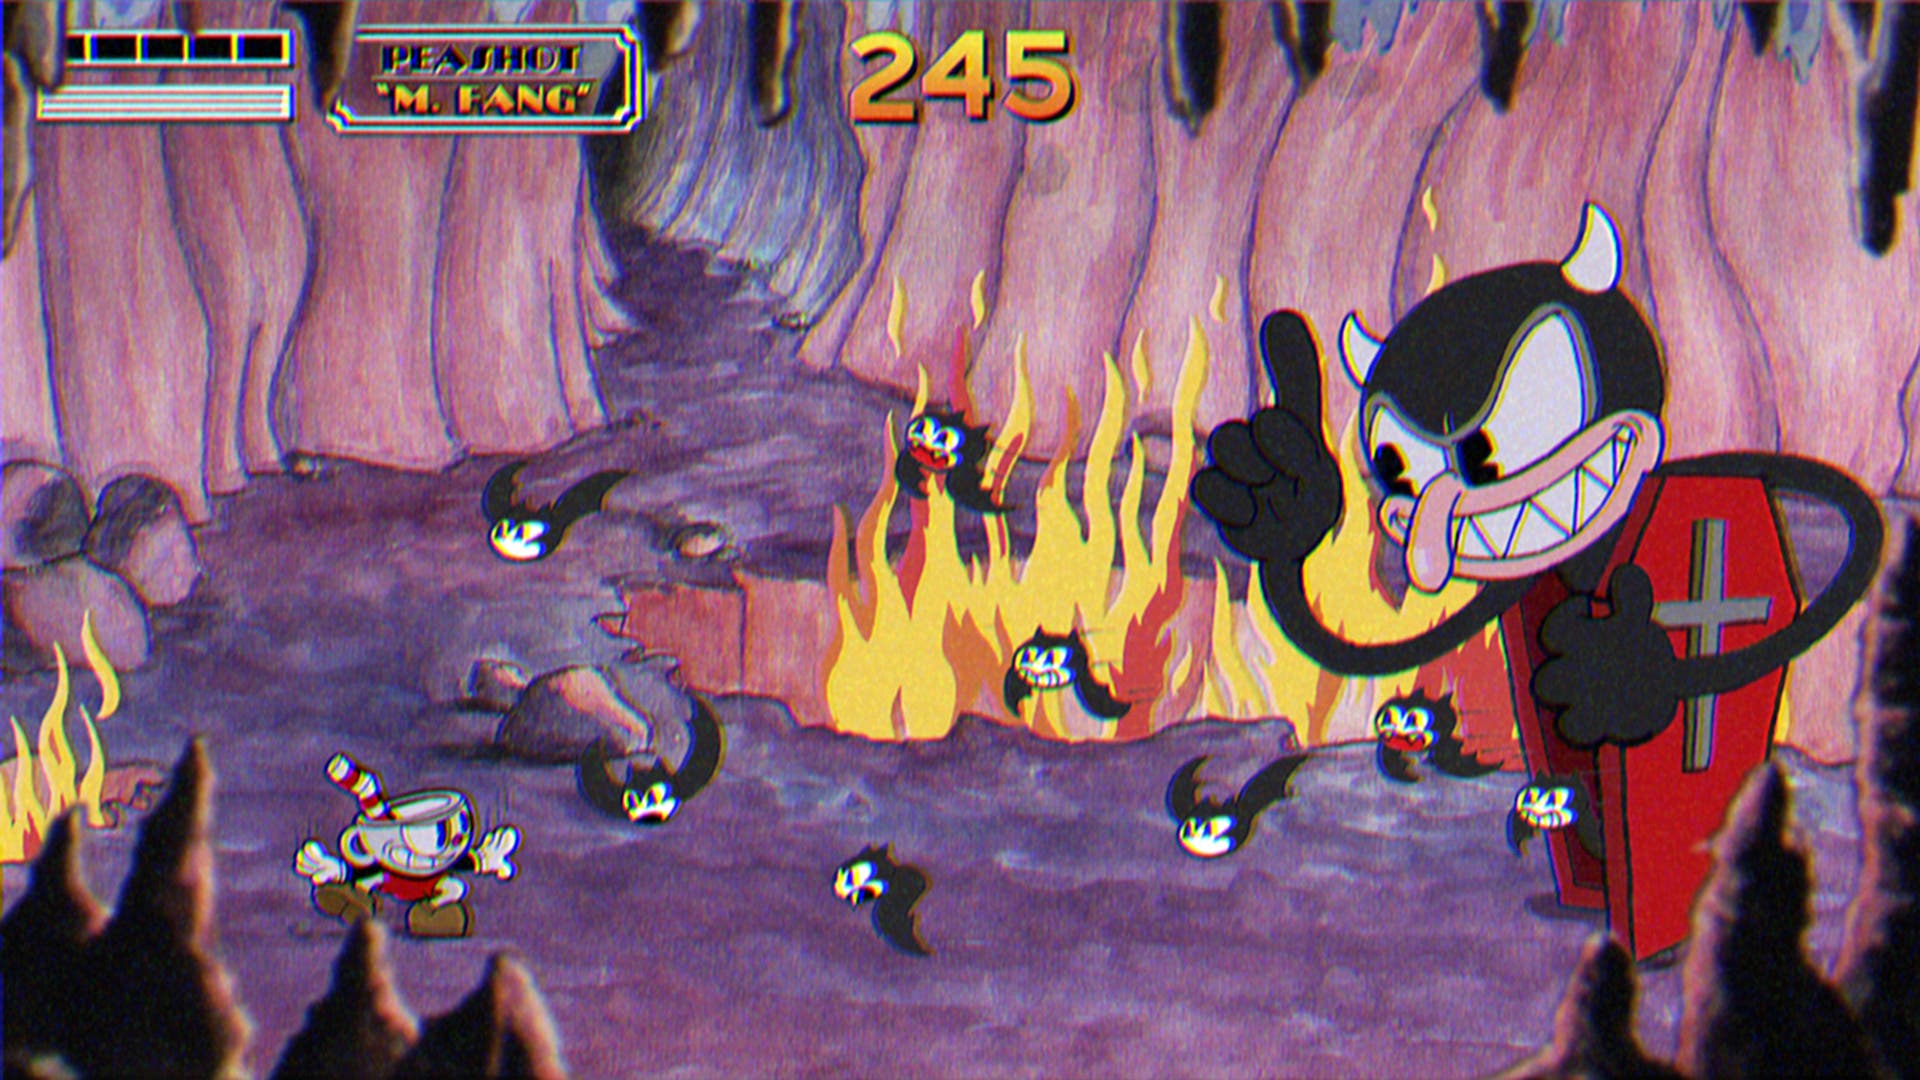 2556181-cuphead-screenshot-bat